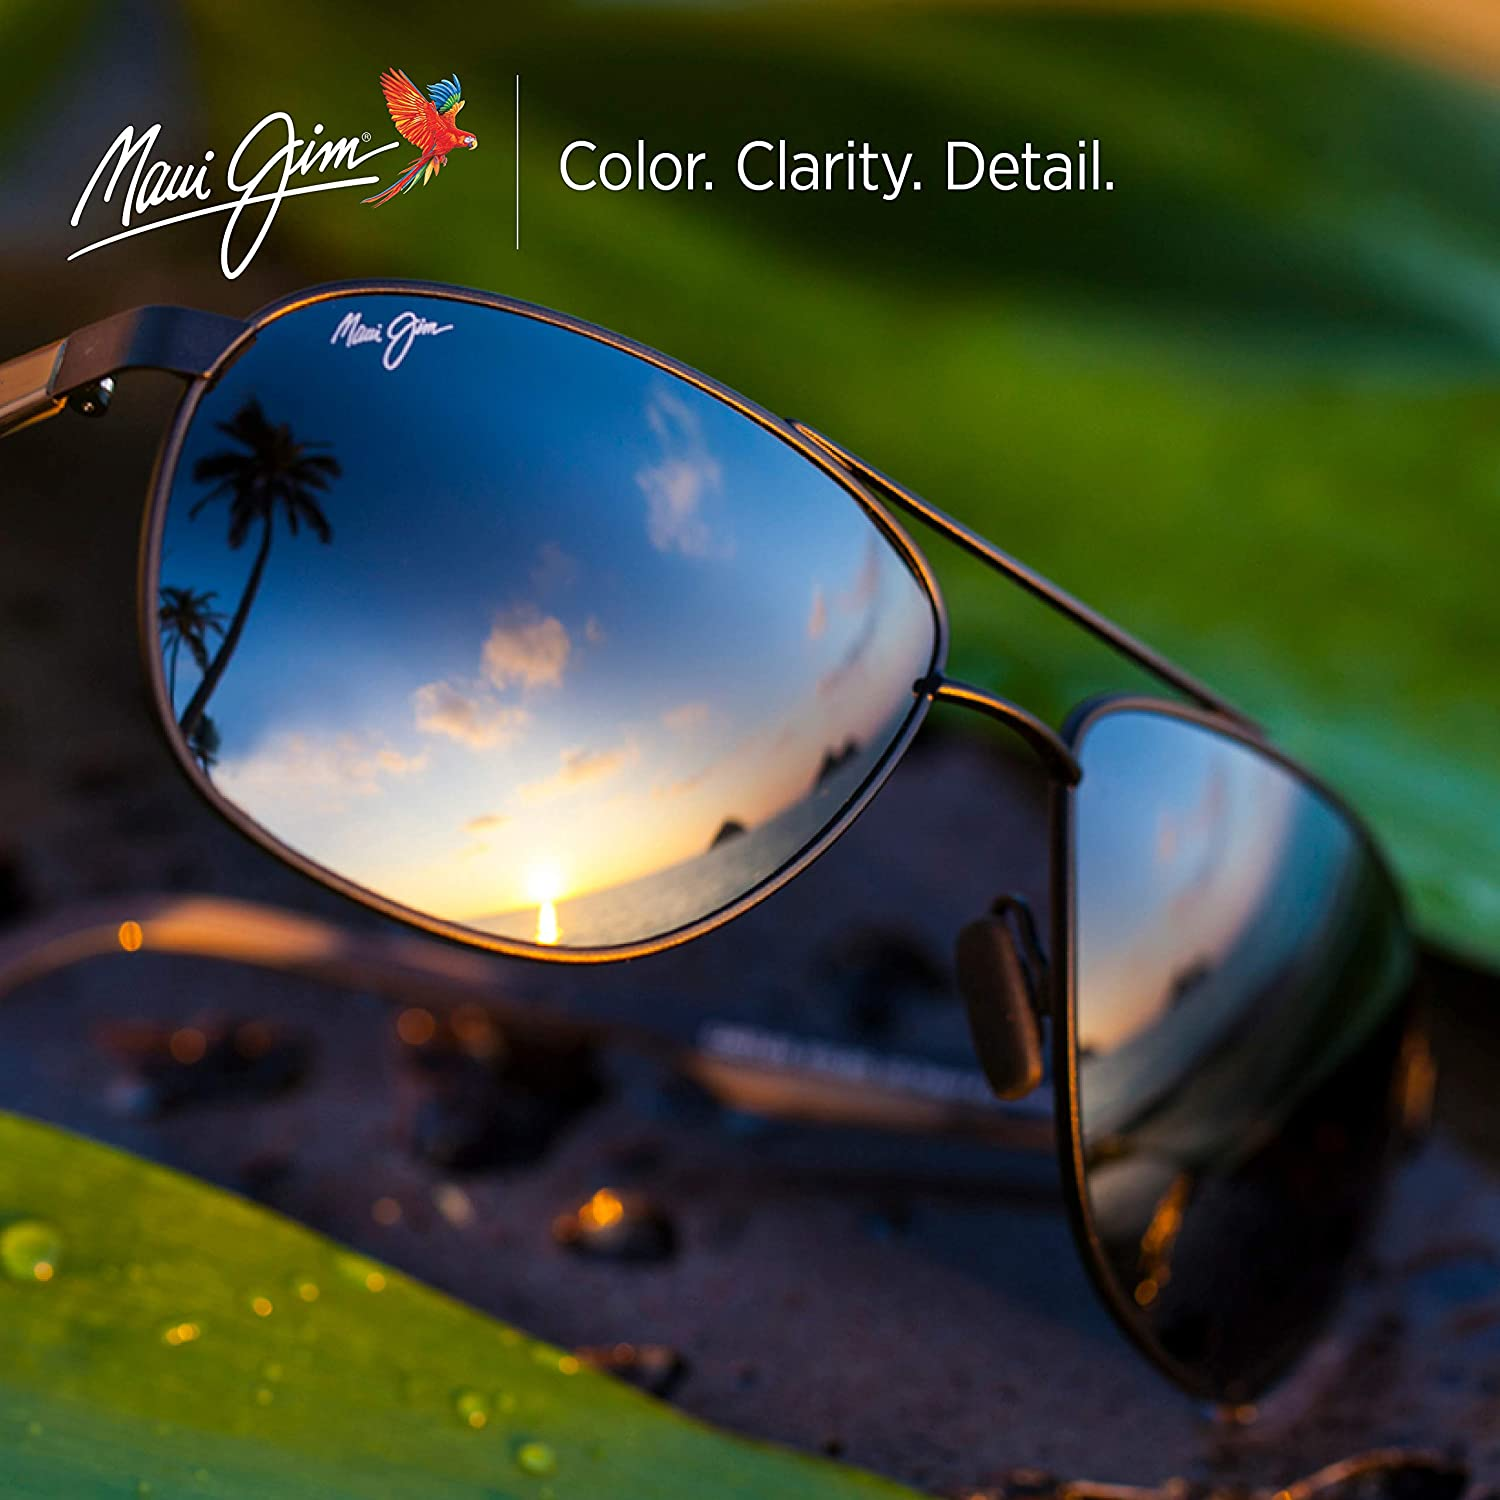 bde0a28223db Amazon.com: Maui Jim Castles 728-2M | Polarized Matte Black Aviator Frame  Sunglasses, with with Patented PolarizedPlus2 Lens Technology: Maui Jim:  Clothing